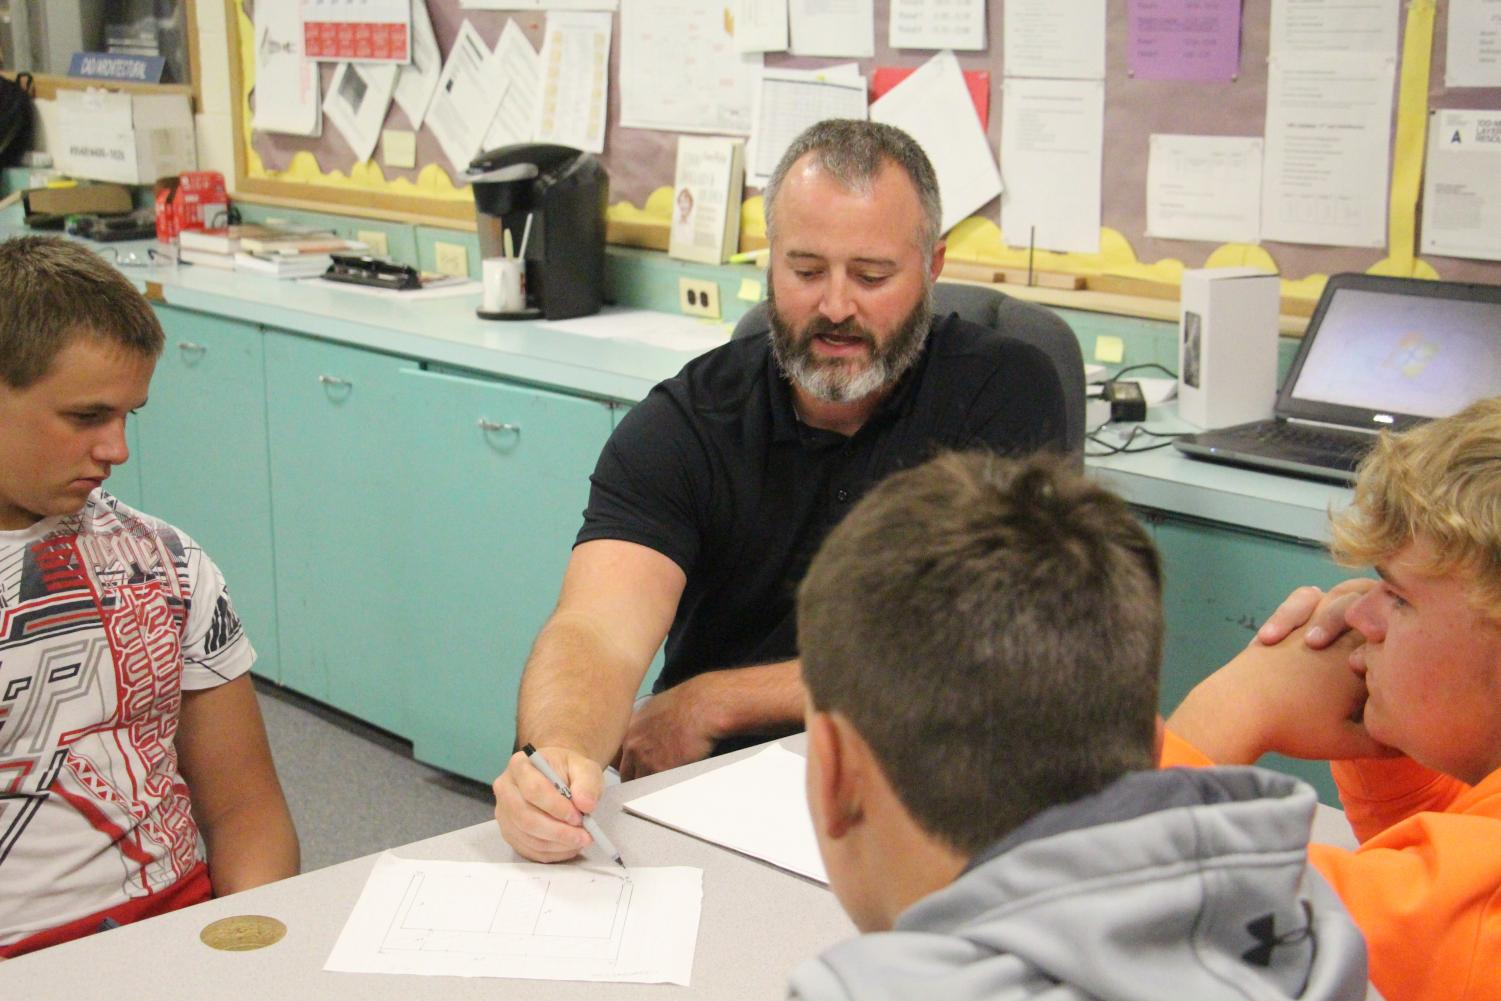 Helping students, Mr. Hoyt makes a point about an assignment.